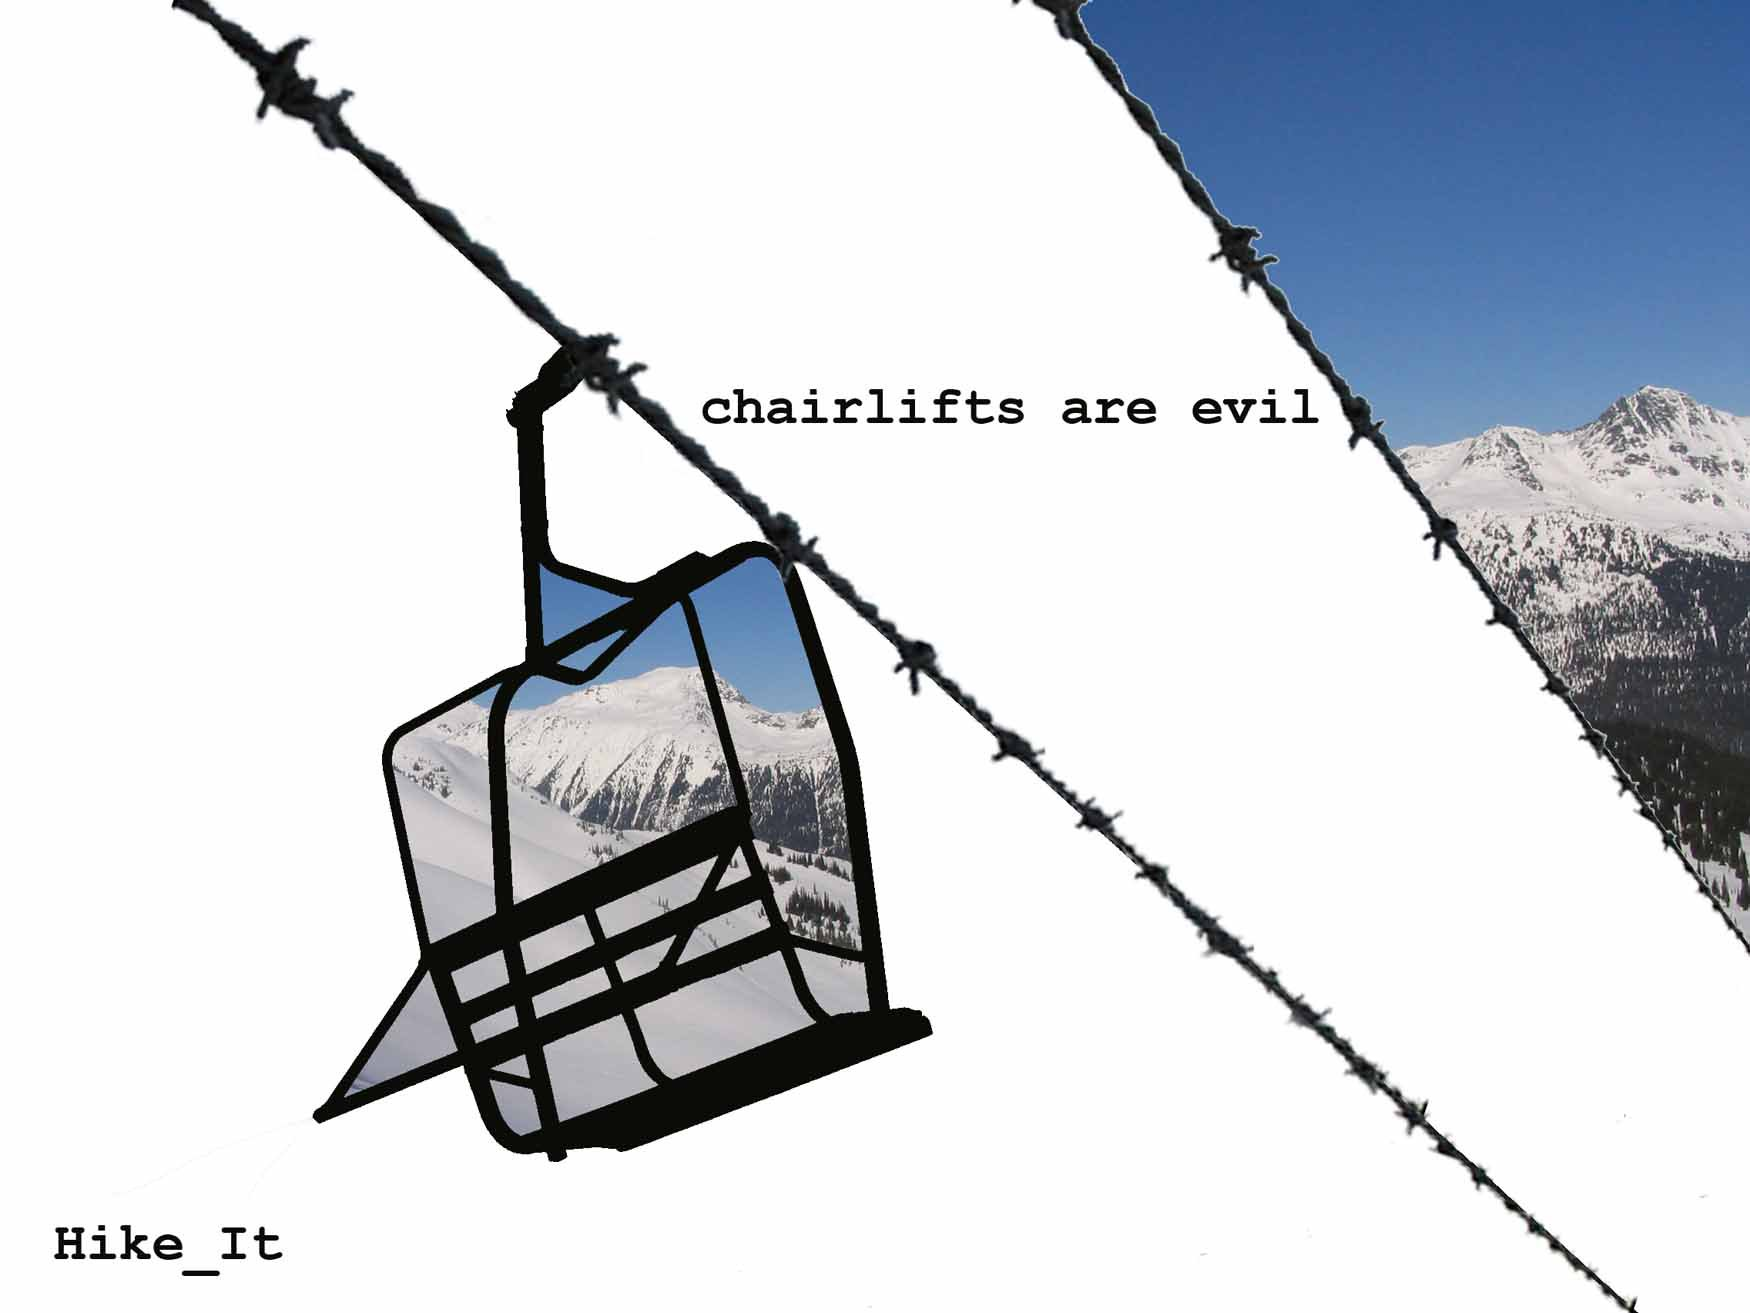 Chairlifts are evil